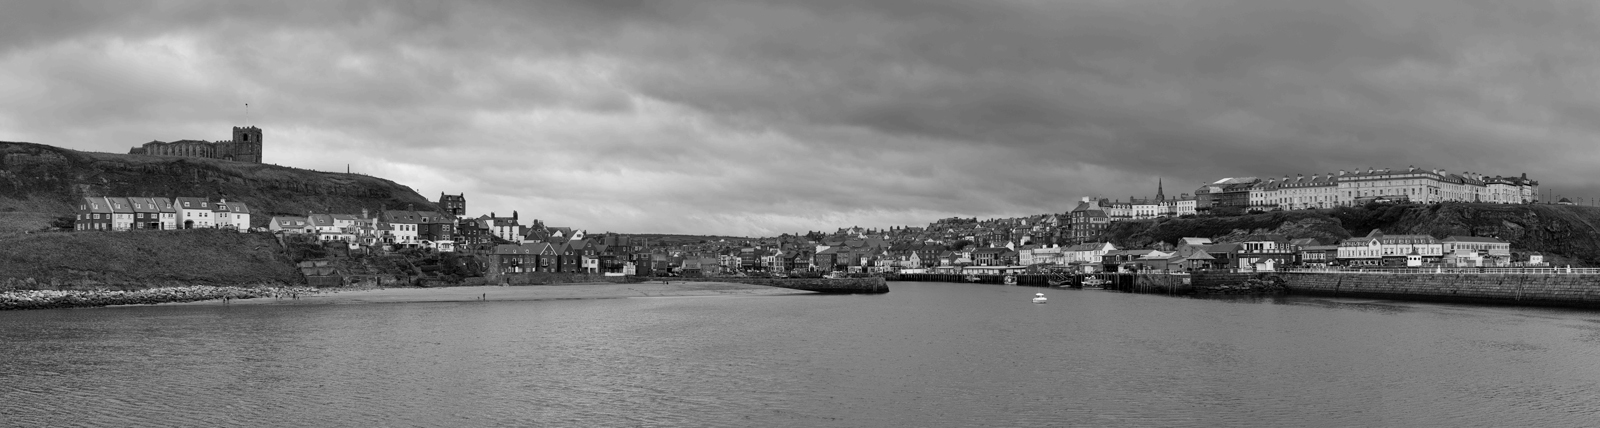 4.whitby panorama.nick webster